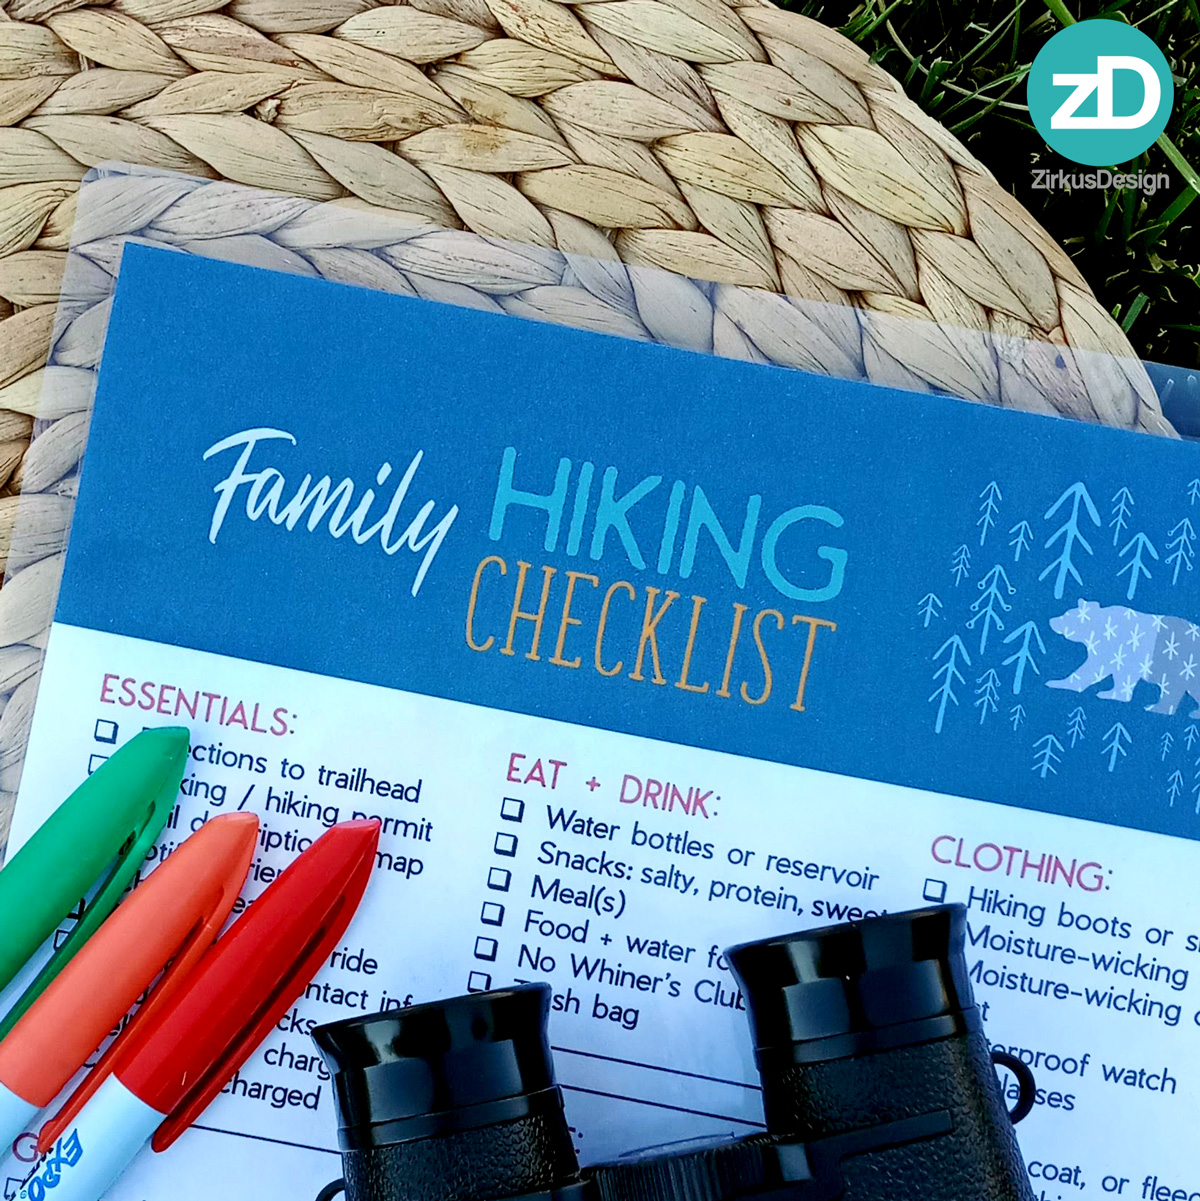 What to Pack for a Family Day Hike - FREE Printable Checklist! - ZirkusDesign.com